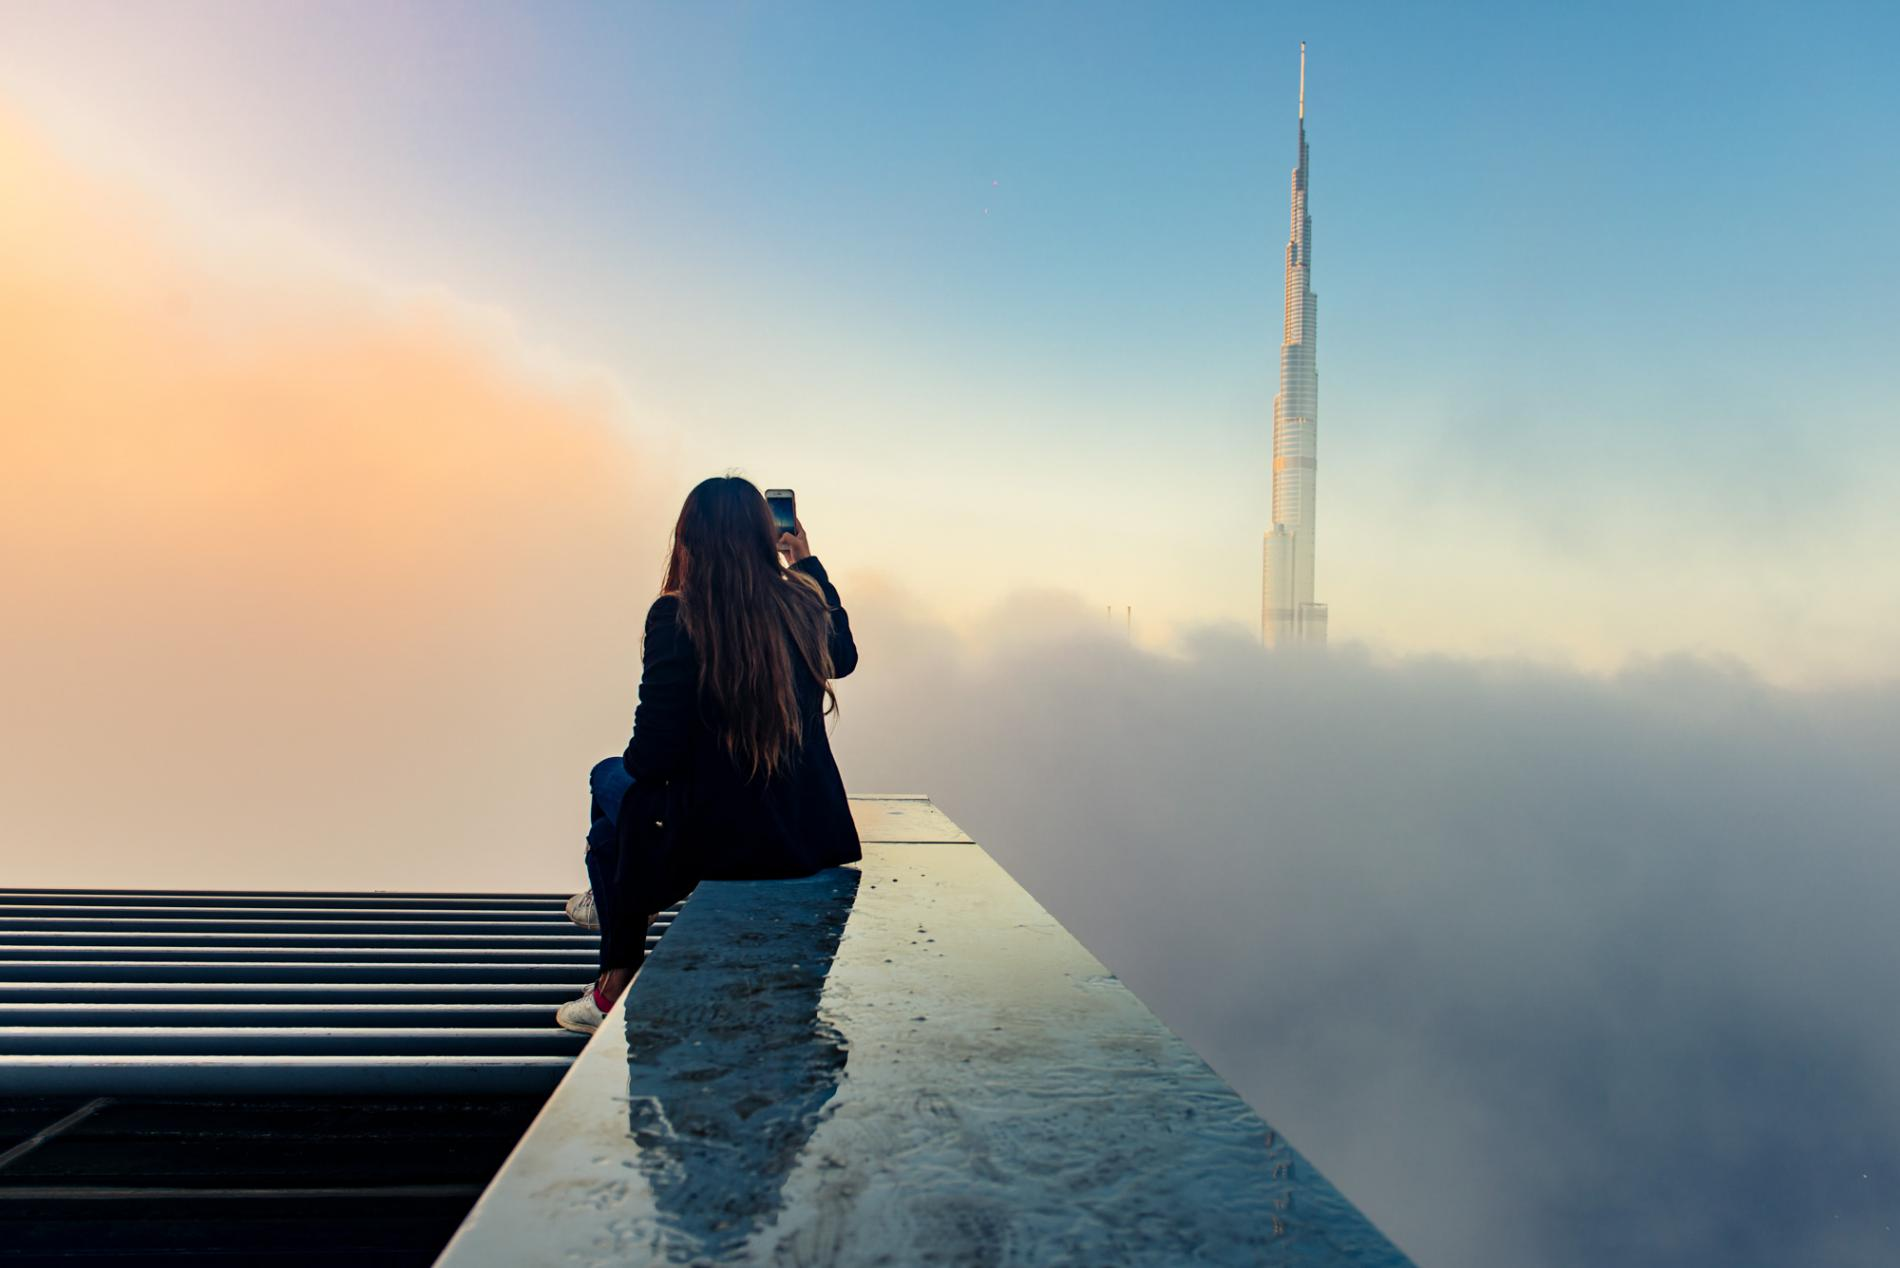 #PhotoduJour Depuis 2008, la tour Burj Khalifa domine Dubaï du haut de ses 829 mètres.  Photo: ©Harsha Pandav, National Geographic Your Shot https://t.co/IDkG9TACGQ